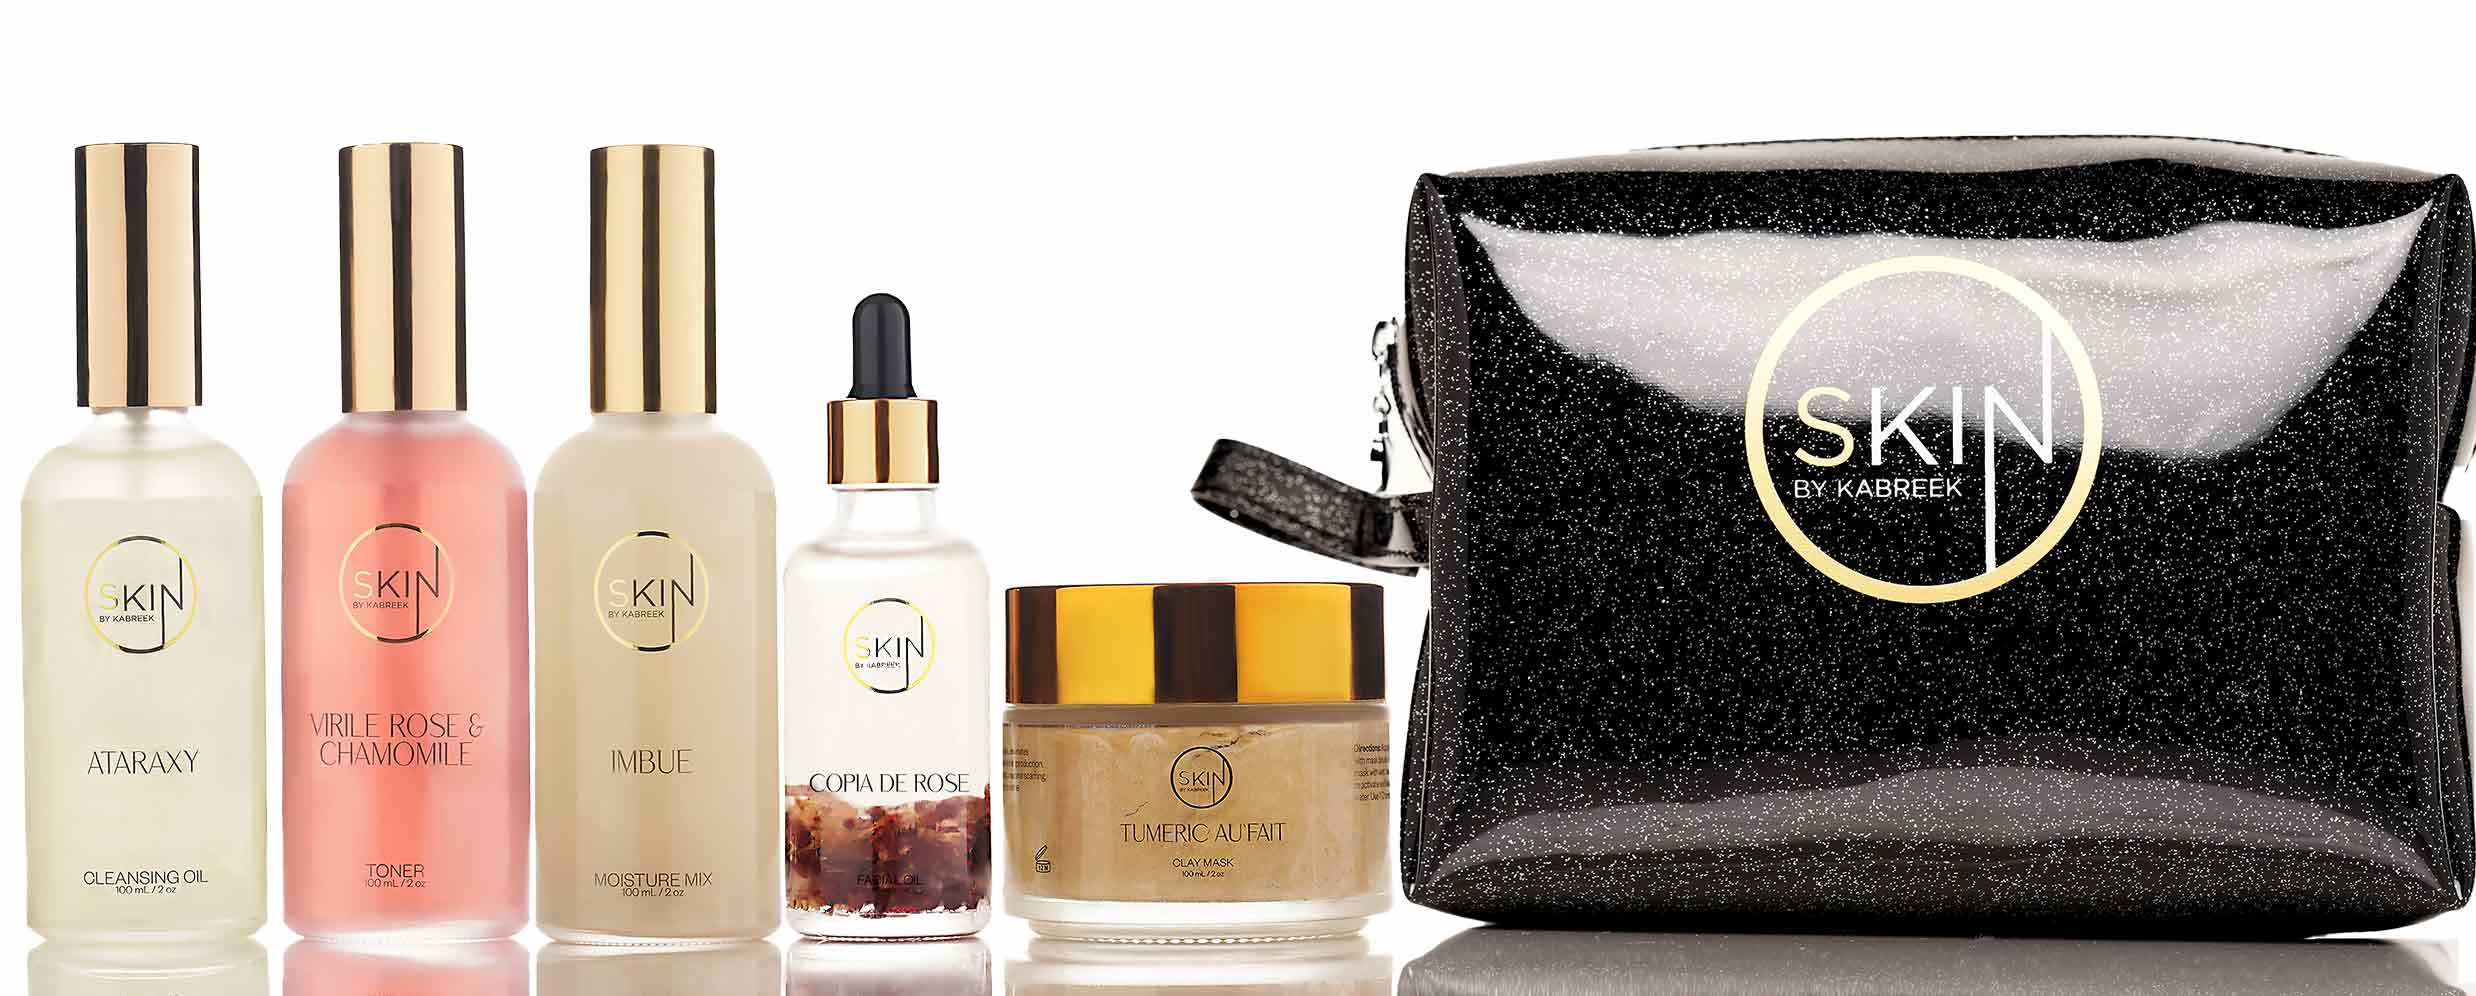 Product photography for Skin by Kabreek